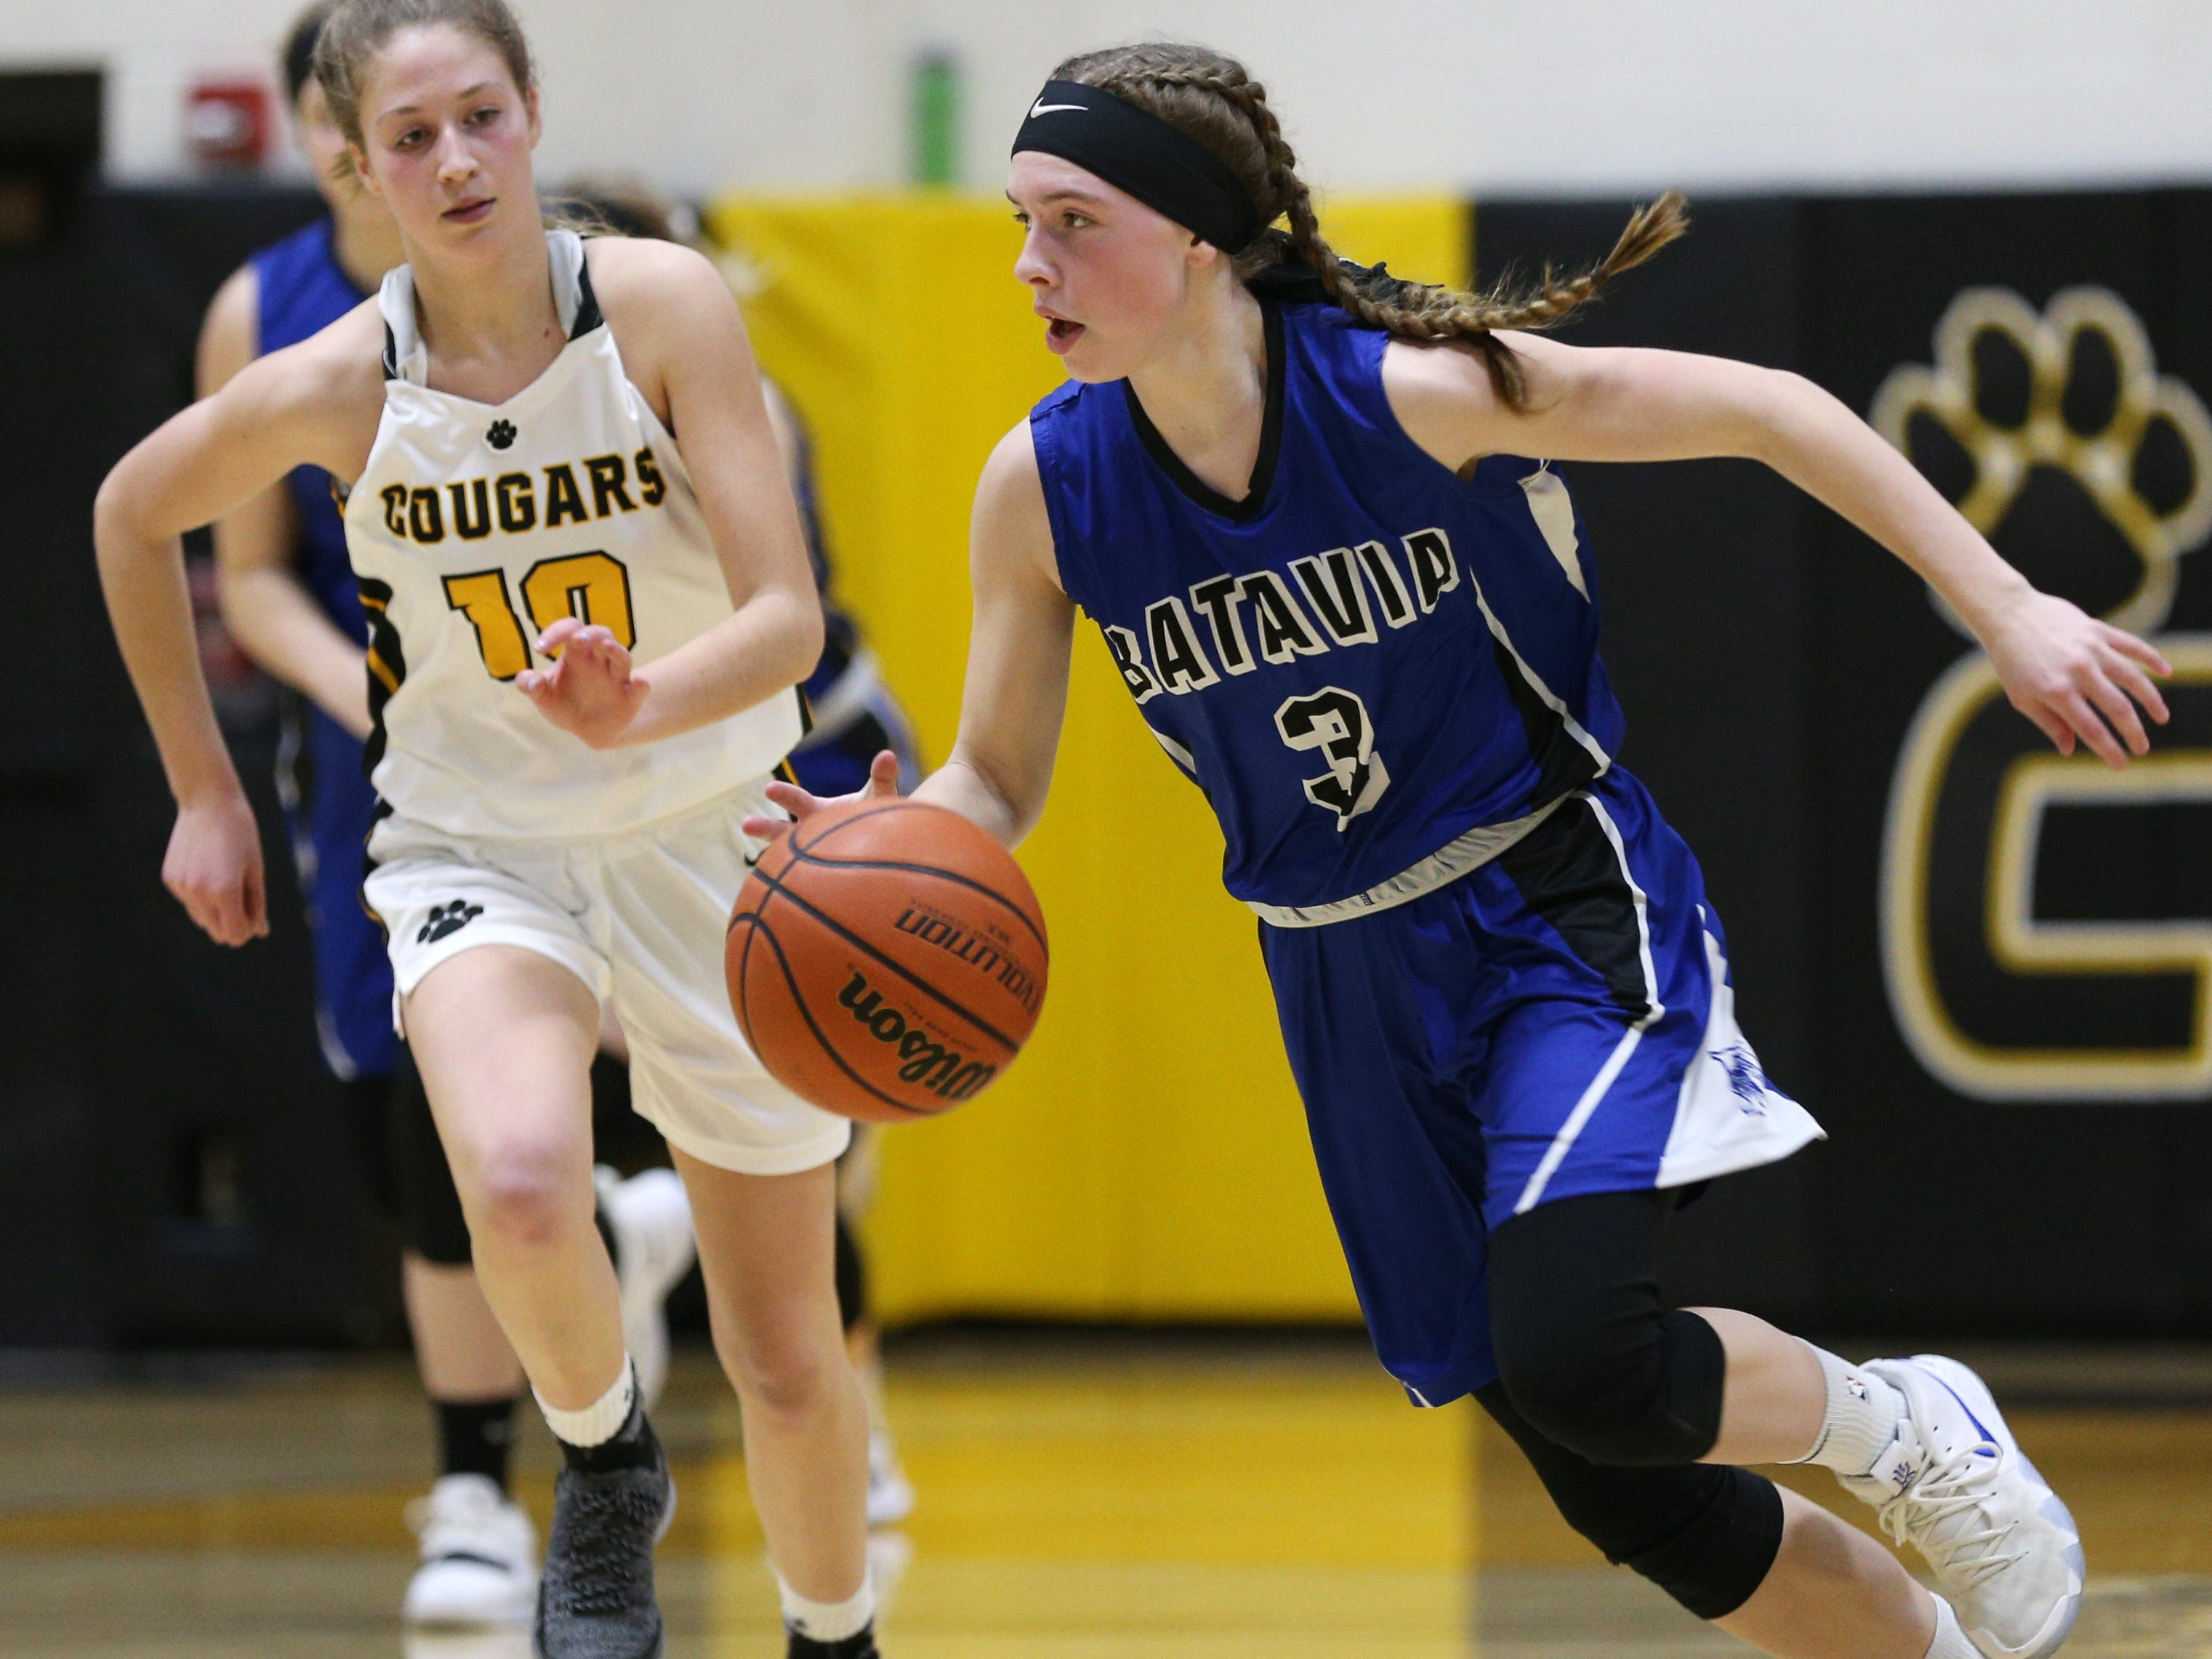 Batavia's Mackenzie Reigle (3) goes upcourt against Honeoye Falls-Lima's Hannah Selke (10).